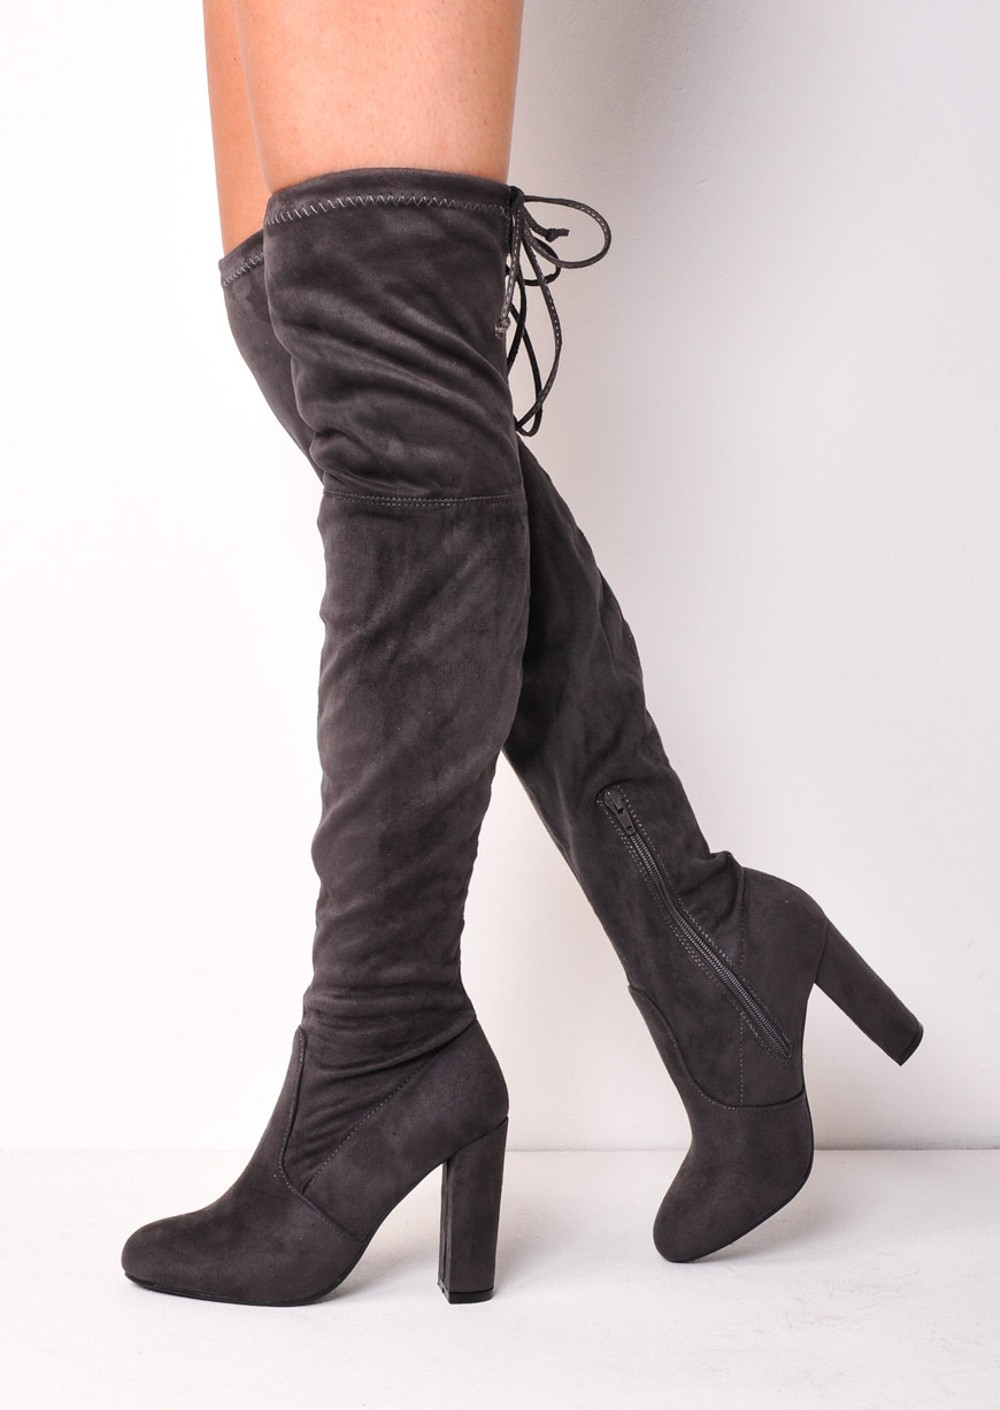 Thigh High Suede Heel Boots - Cr Boot